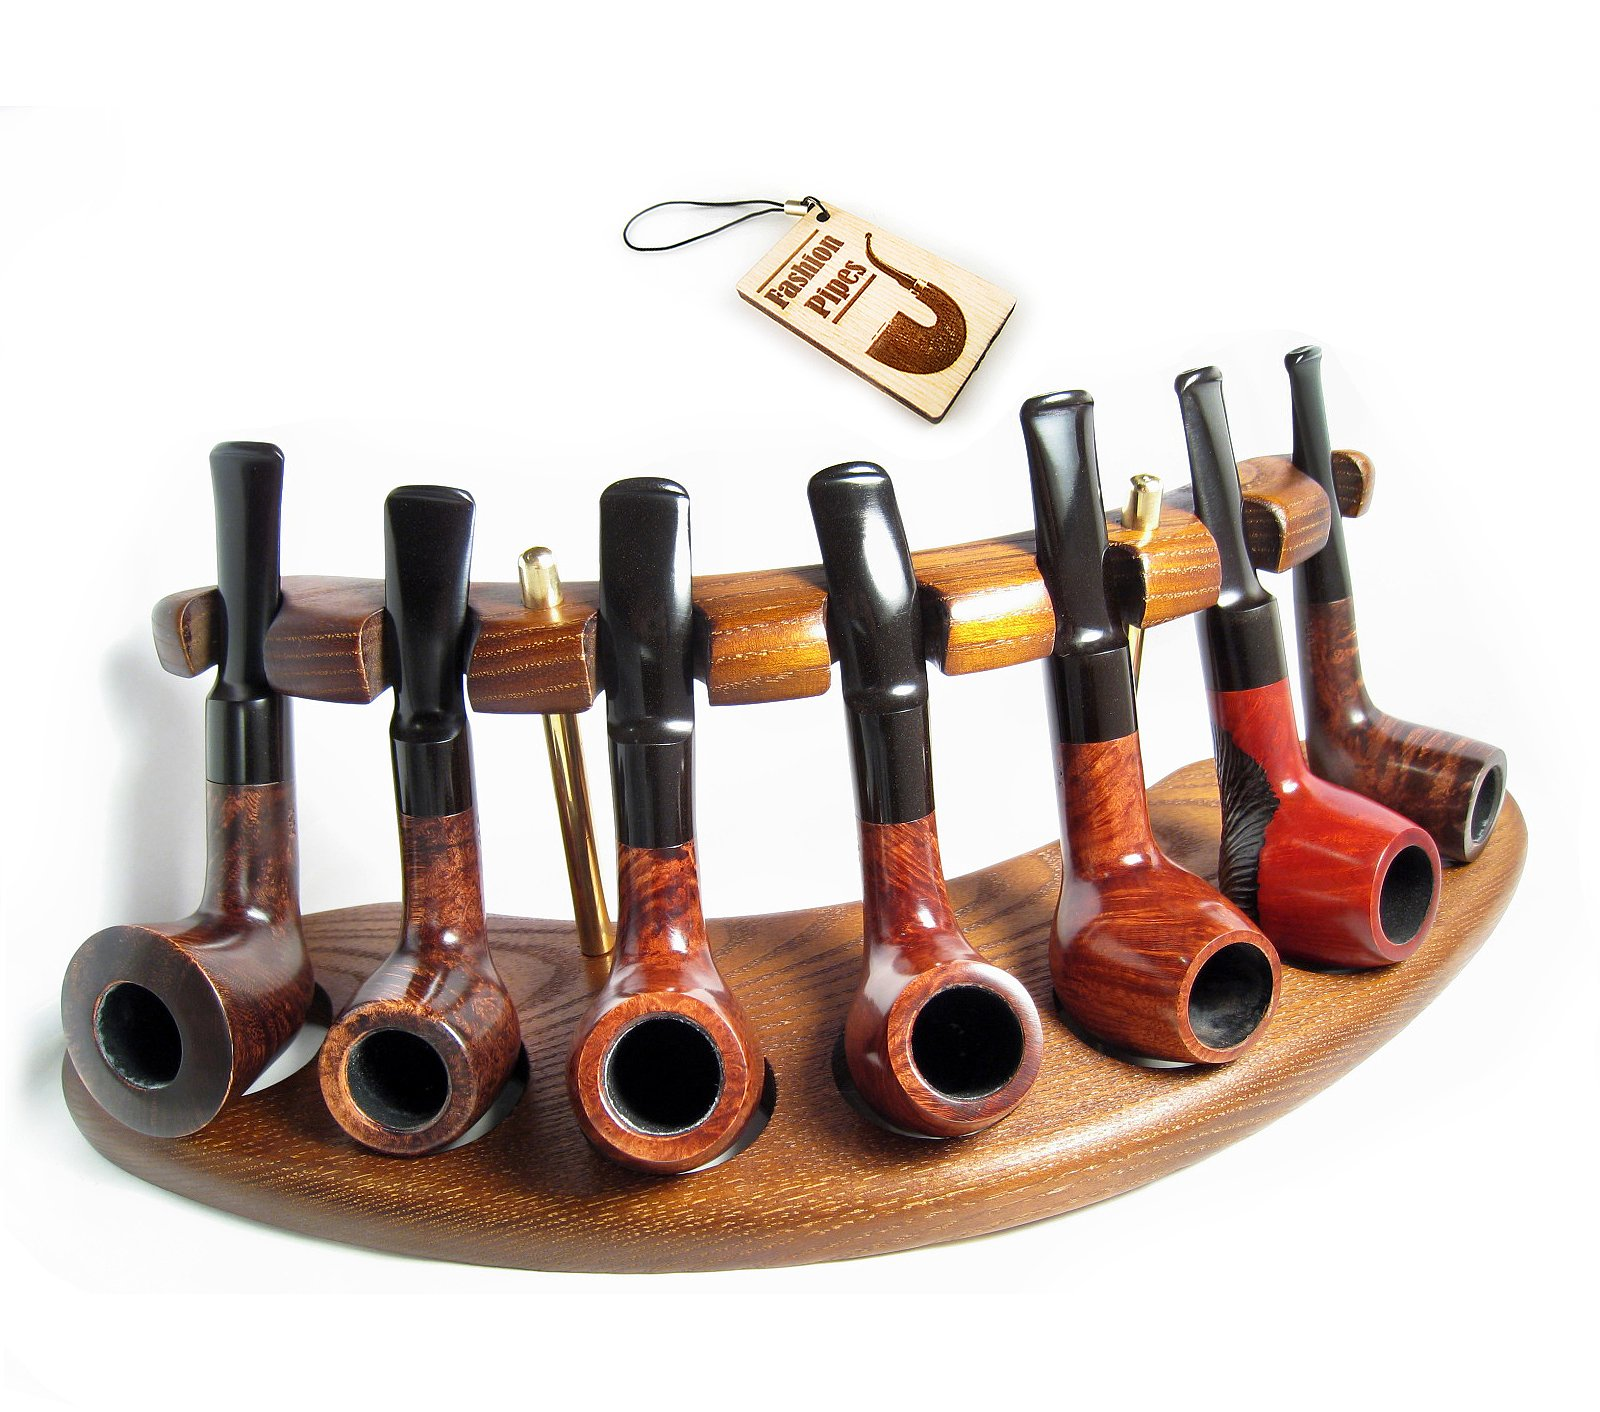 New Wooden Pipe Stand Rack Holder for 7 Tobacco Pipes. Handcrafted (7)